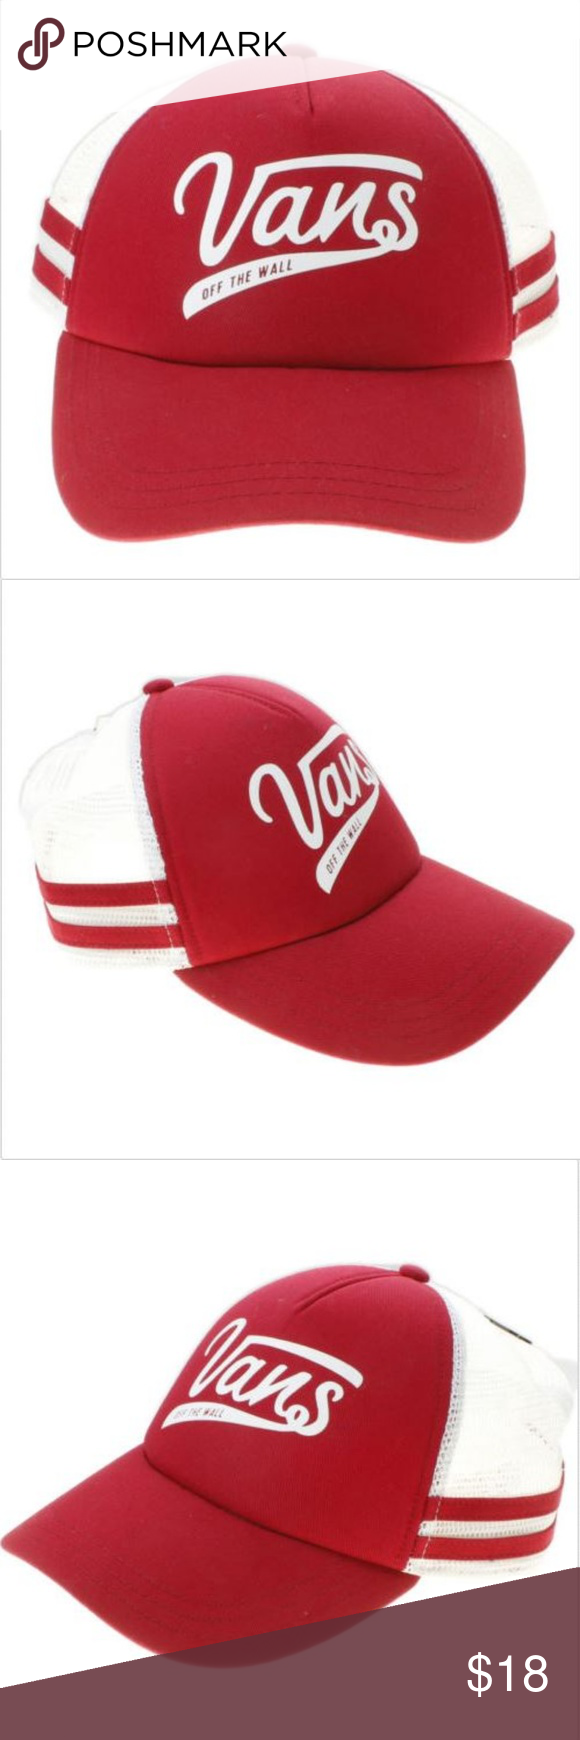 32ee9b40e2 Vans Off The Wall Sport Mesh Trucker Hat Vans Off The Wall Women s OL Sport  Mesh